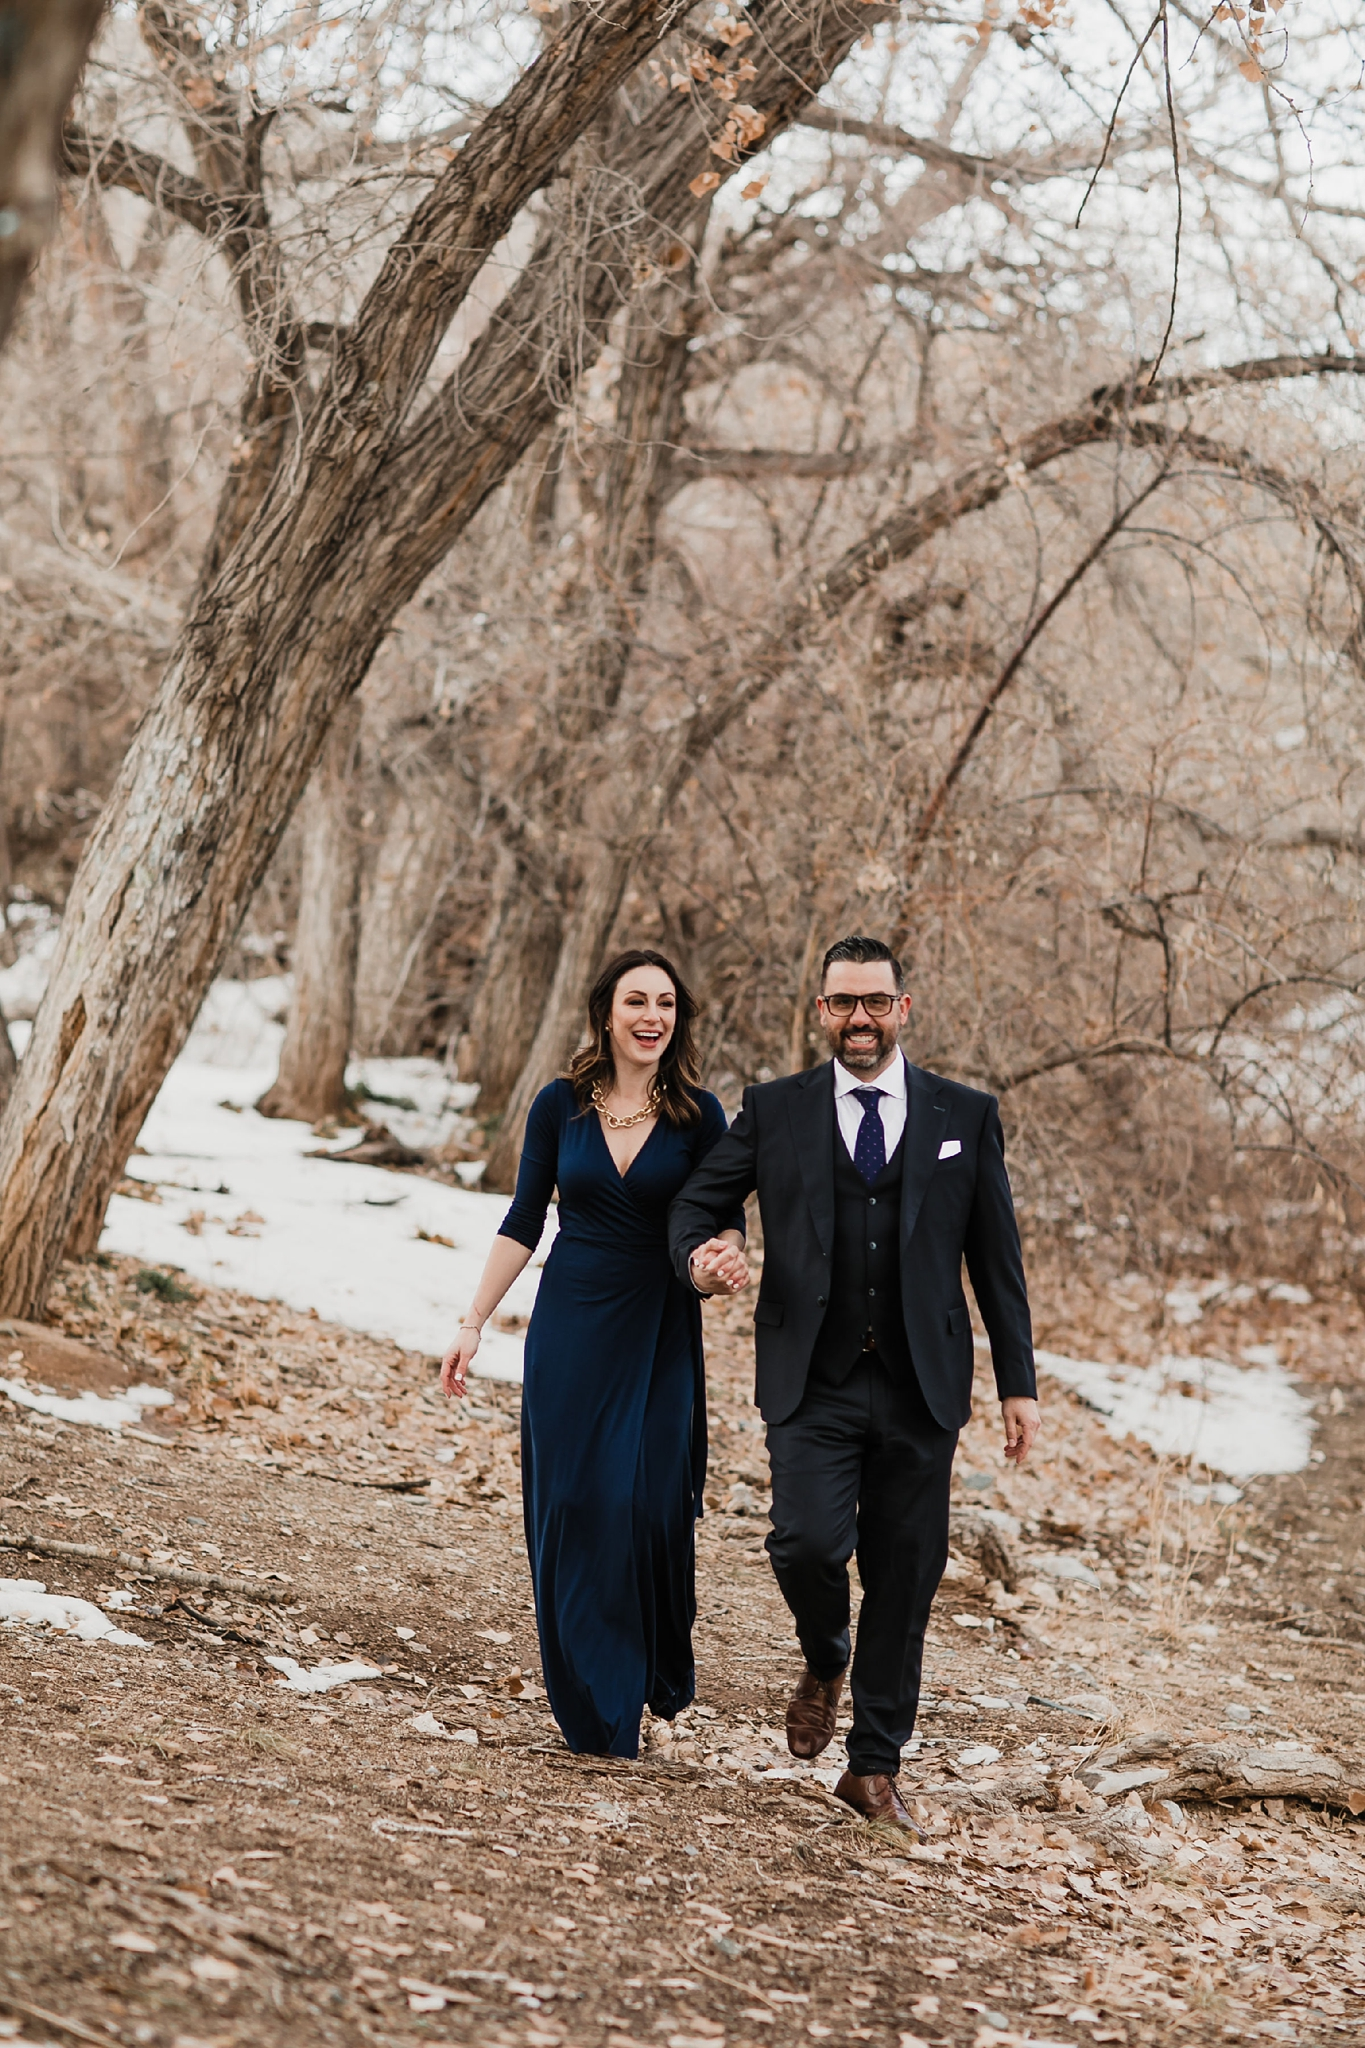 Alicia+lucia+photography+-+albuquerque+wedding+photographer+-+santa+fe+wedding+photography+-+new+mexico+wedding+photographer+-+new+mexico+wedding+-+engagement+-+winter+engagement+-+albuquerque+engagement_0012.jpg